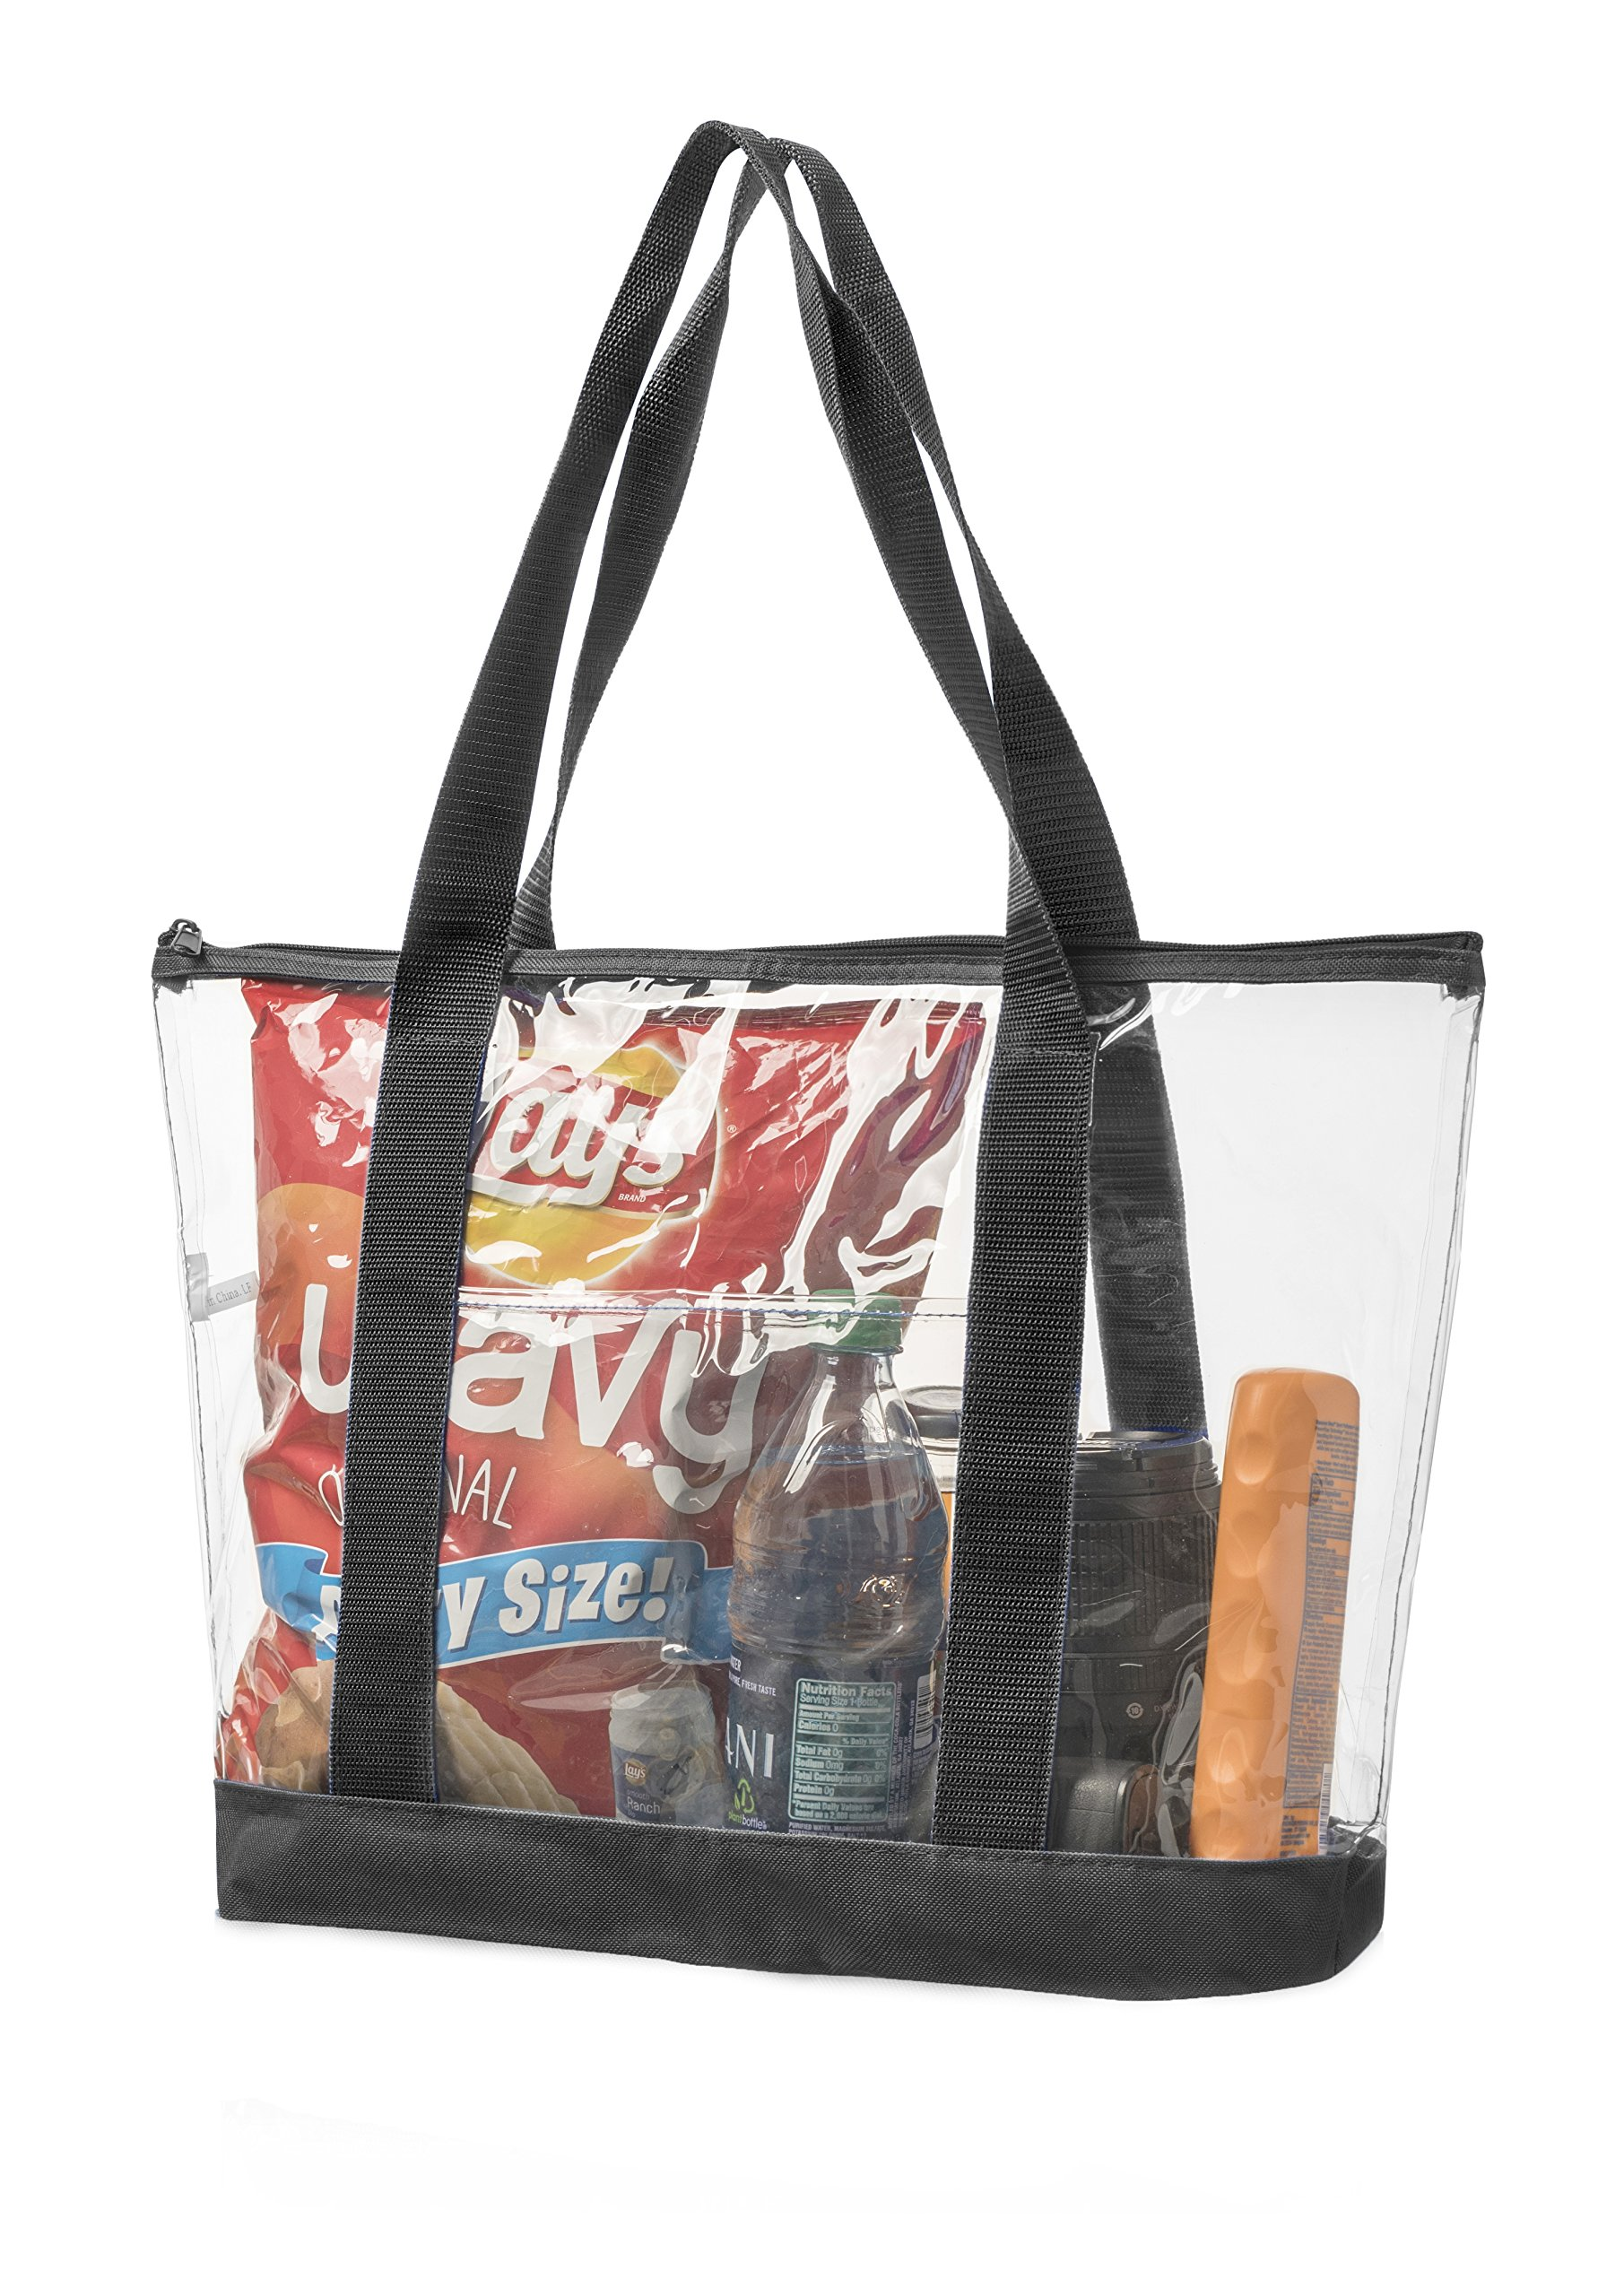 c3748642527c6f Bags for Less Clear Stadium Security Travel & Gym Zippered Tote Bag By  Sturdy PVC Construction